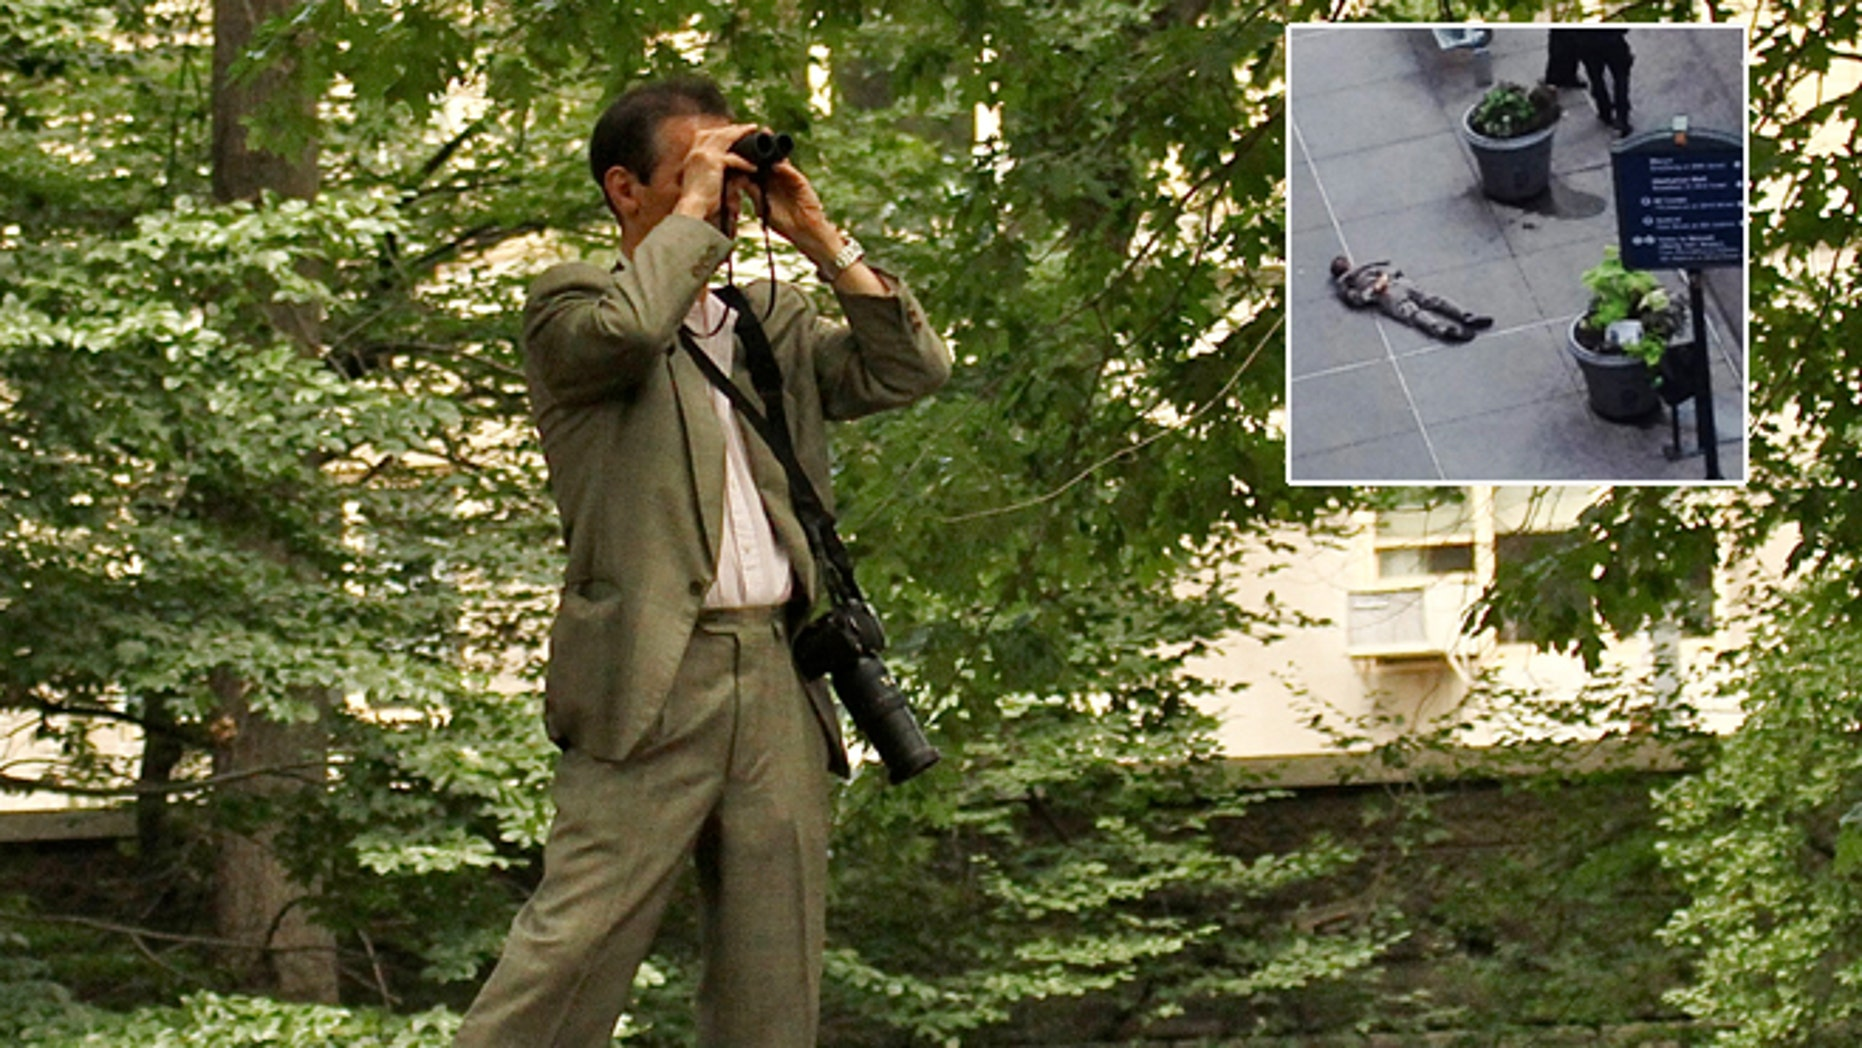 In this June 30, 2012 photo provided by Jean Shum, Jeffrey Johnson goes bird watching in New York's Central Park. Johnson was killed by police gunfire after he fatally shot an executive at his former company.